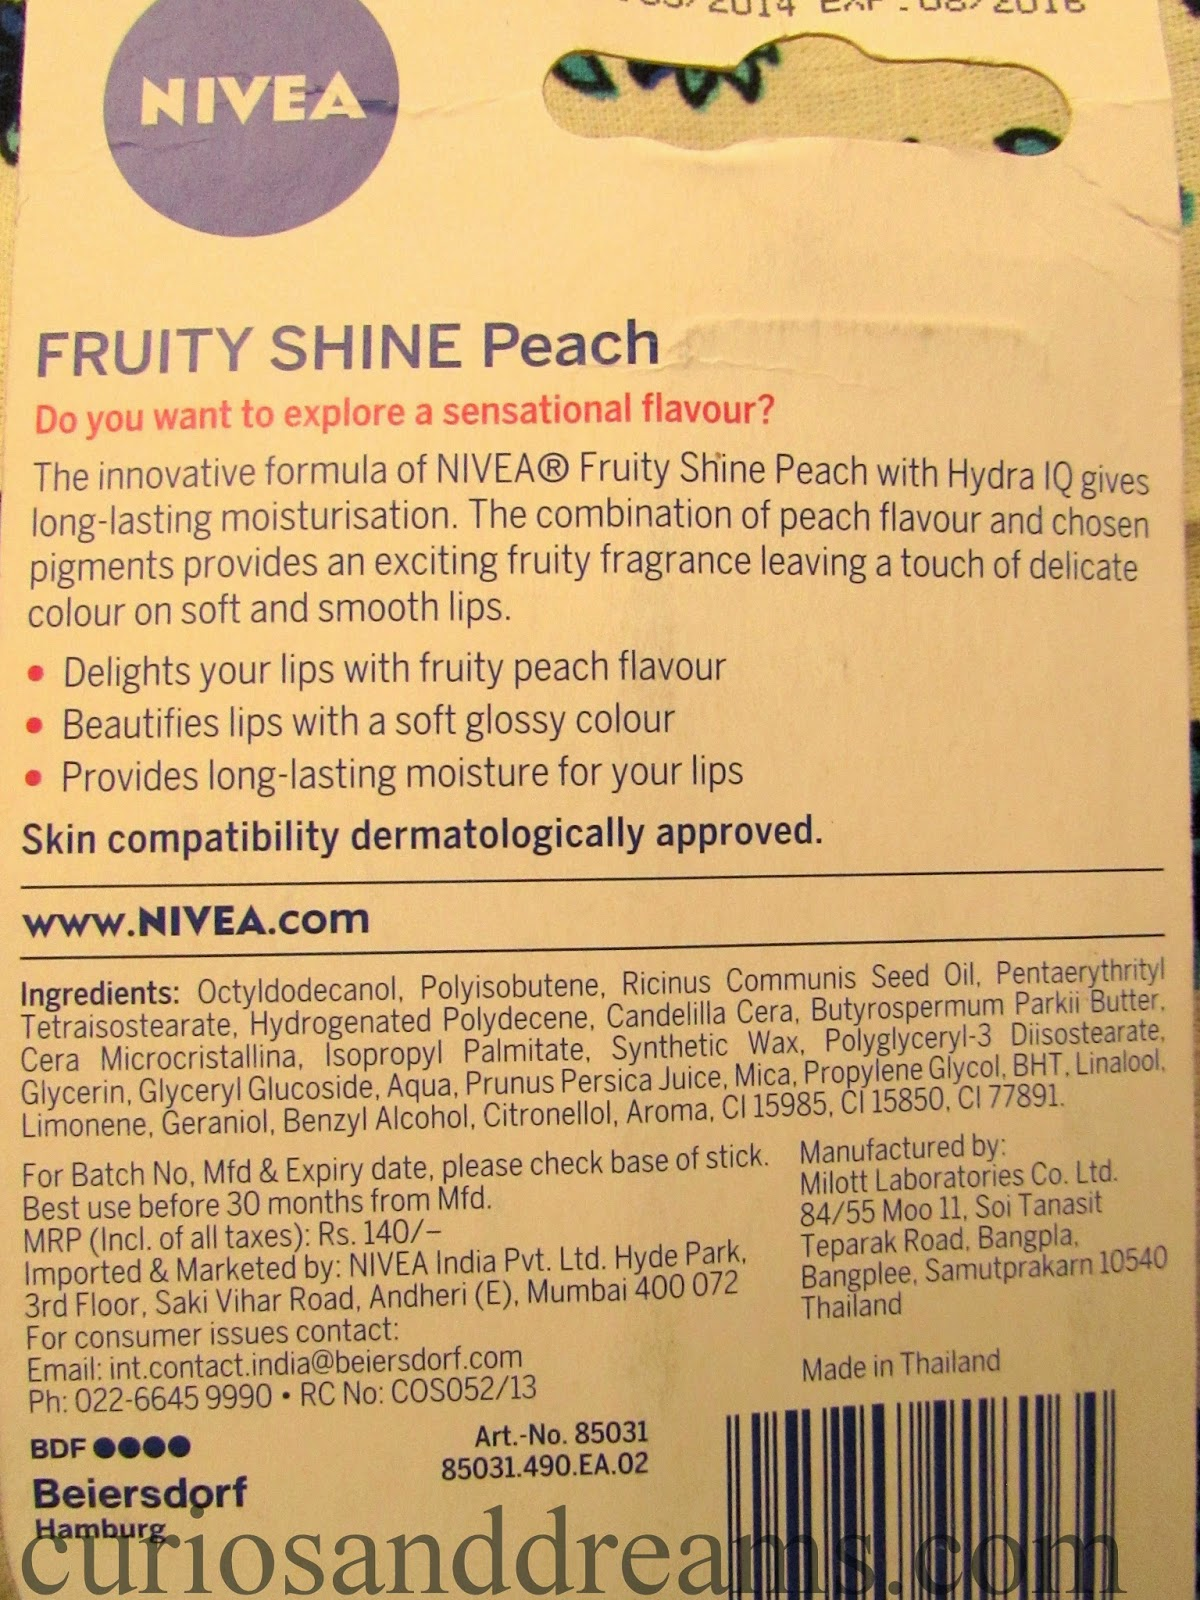 Nivea Fruity Shine Peach Review